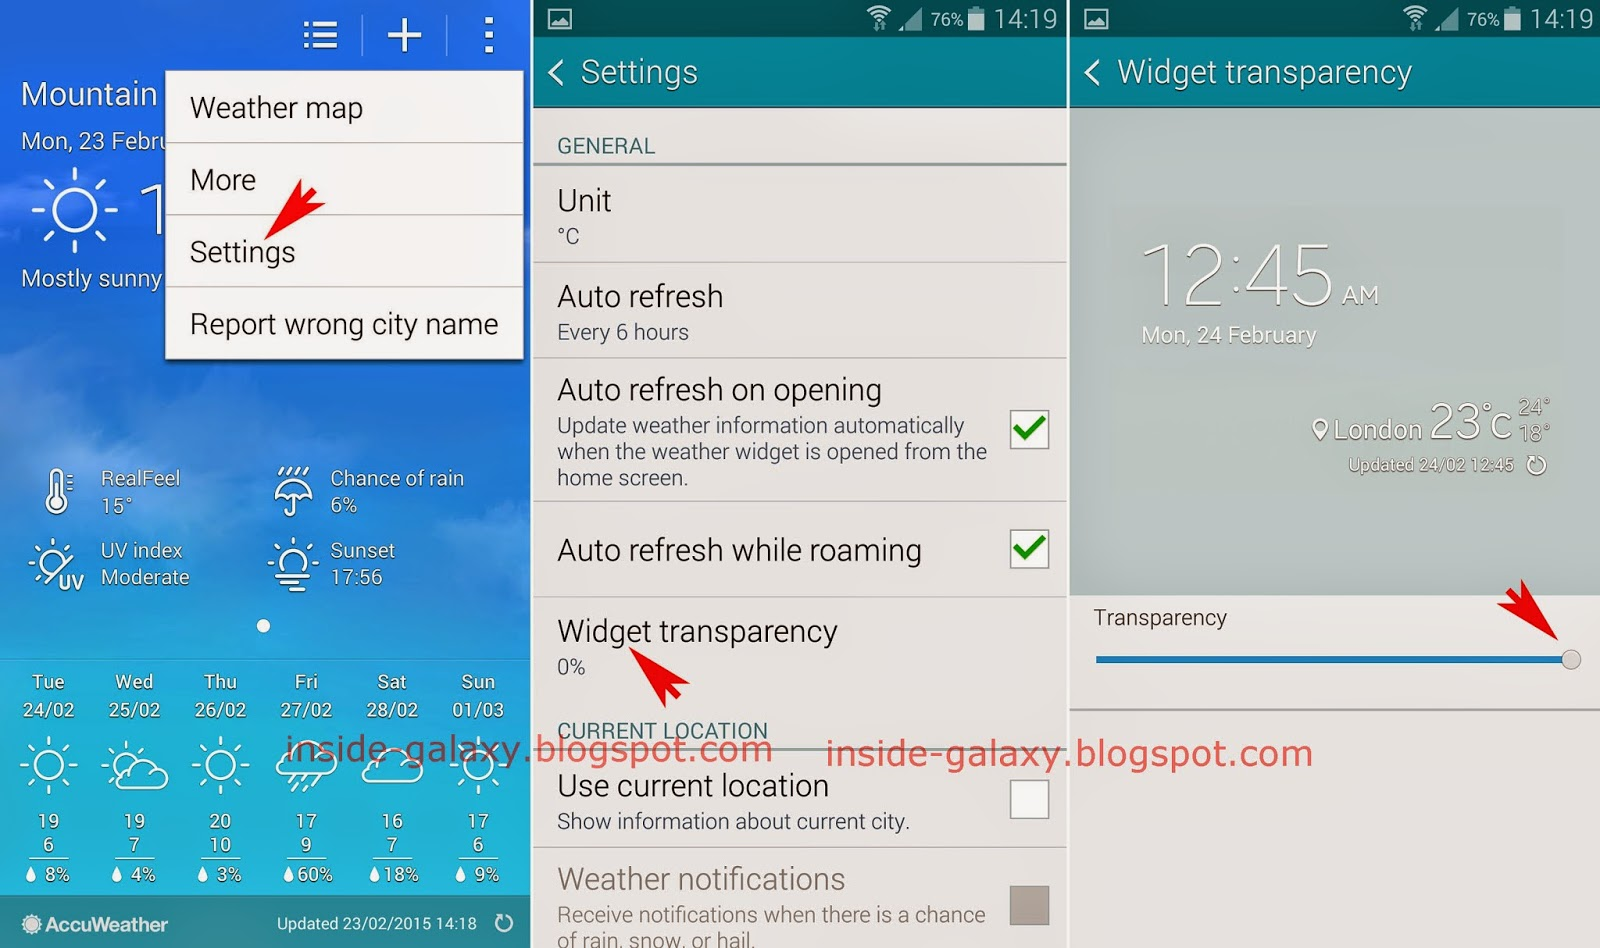 Samsung Galaxy S5: How to Make Accuweather Widget Becomes